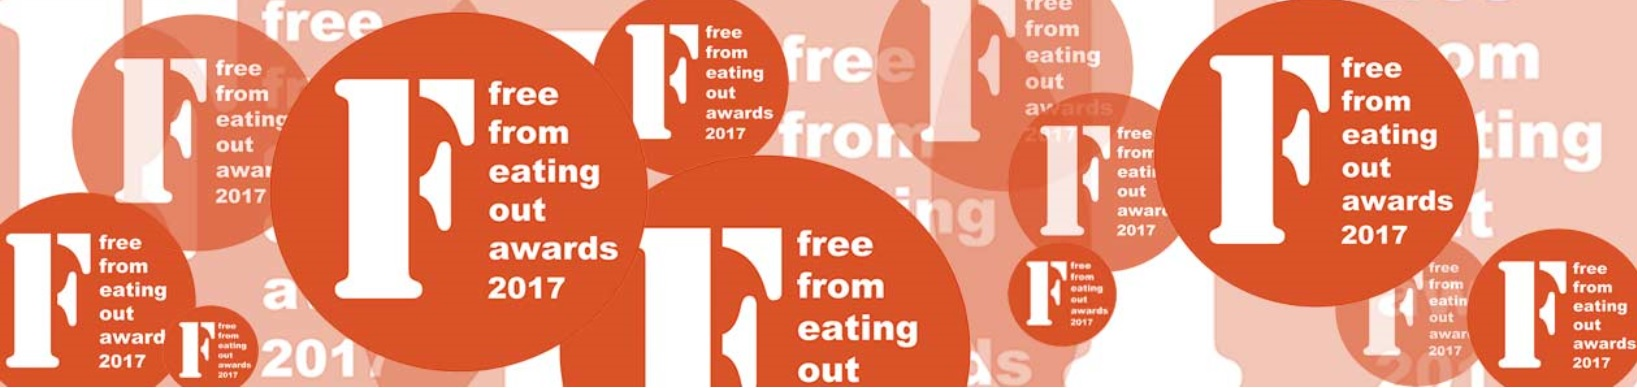 FFEO17 - Free From Eating Out Awards 2017. It's THE awards for restaurants, pubs, cafes etc to showcase their fantastic free from menus, and their understanding of allergies and cross contamination! www.intolerantgourmand.com